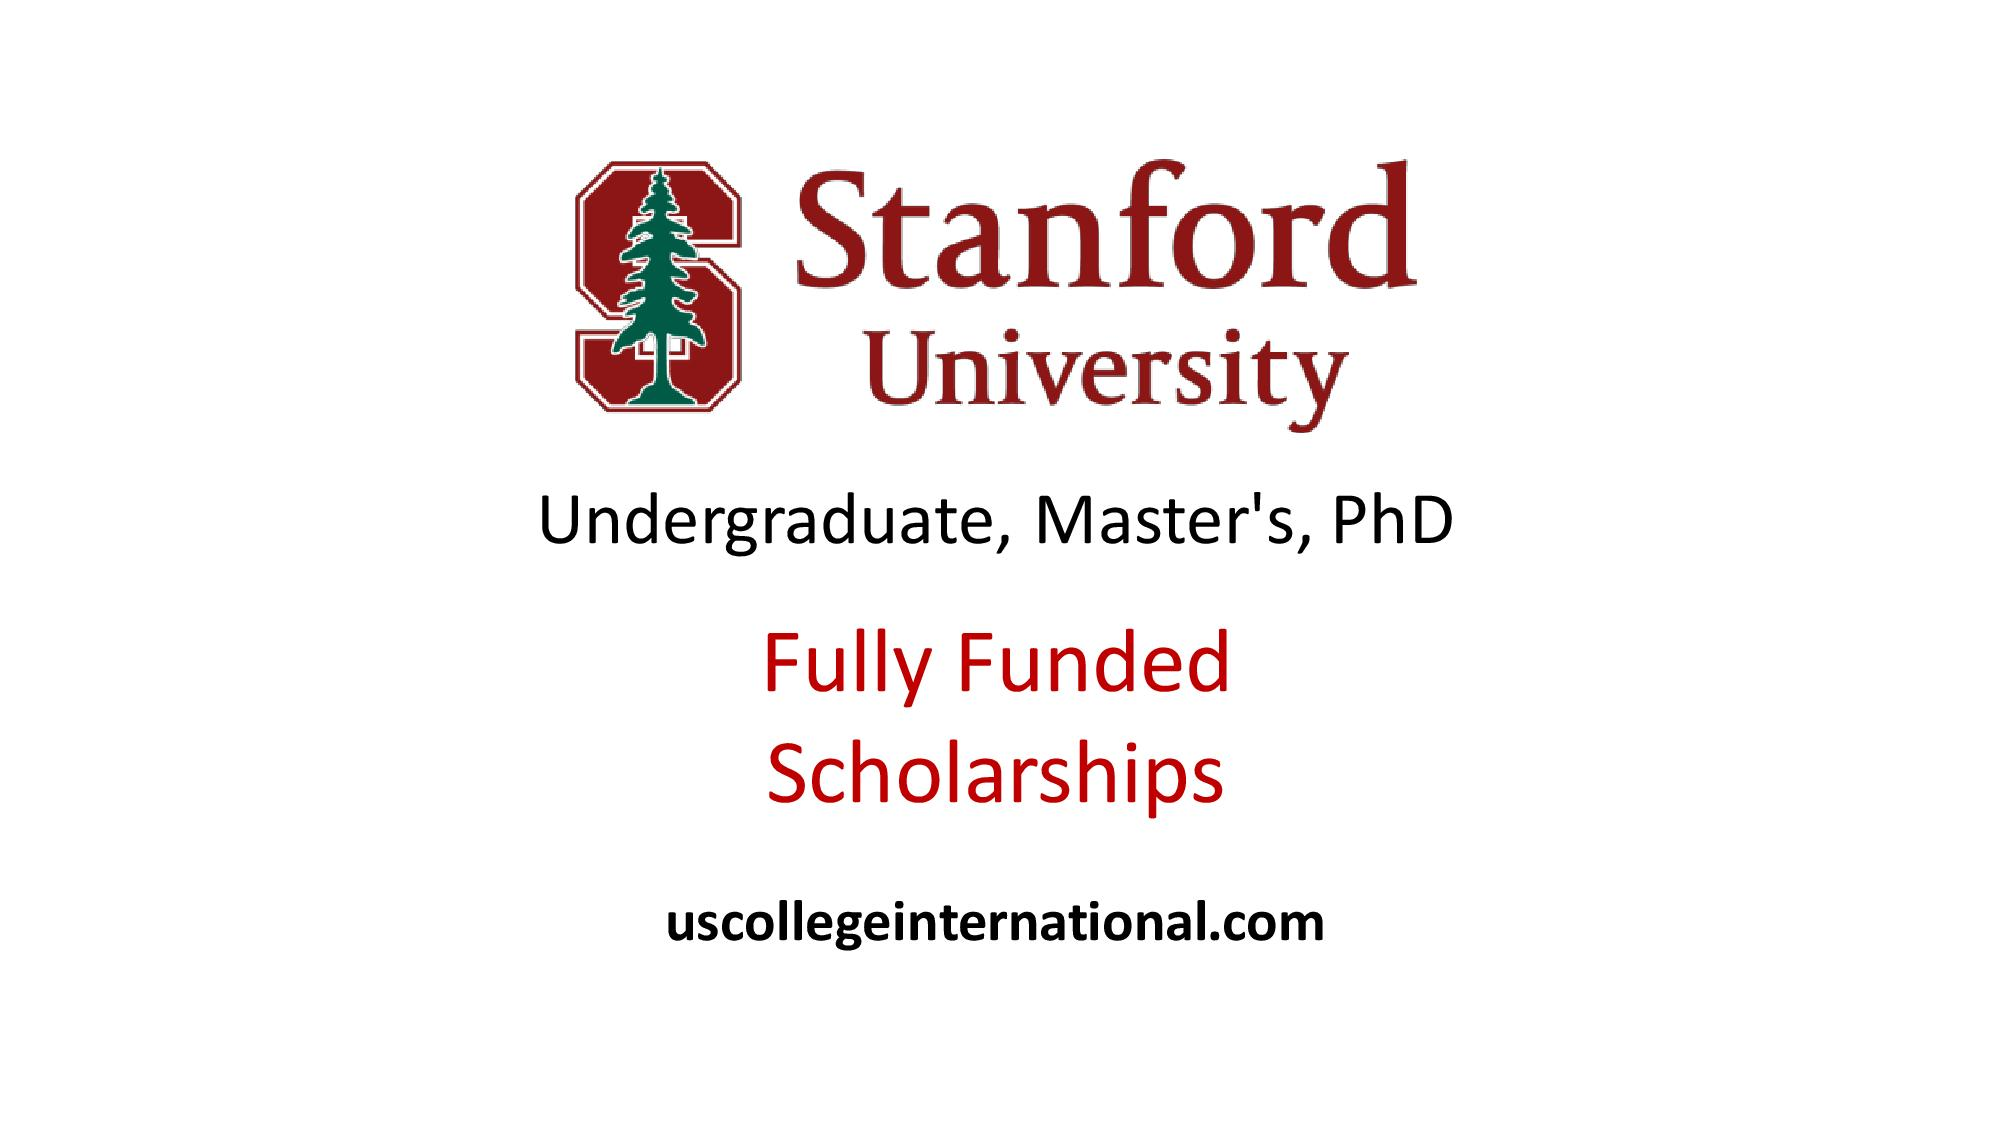 Stanford University Scholarships 2019 (Fully Funded) - Scholarships